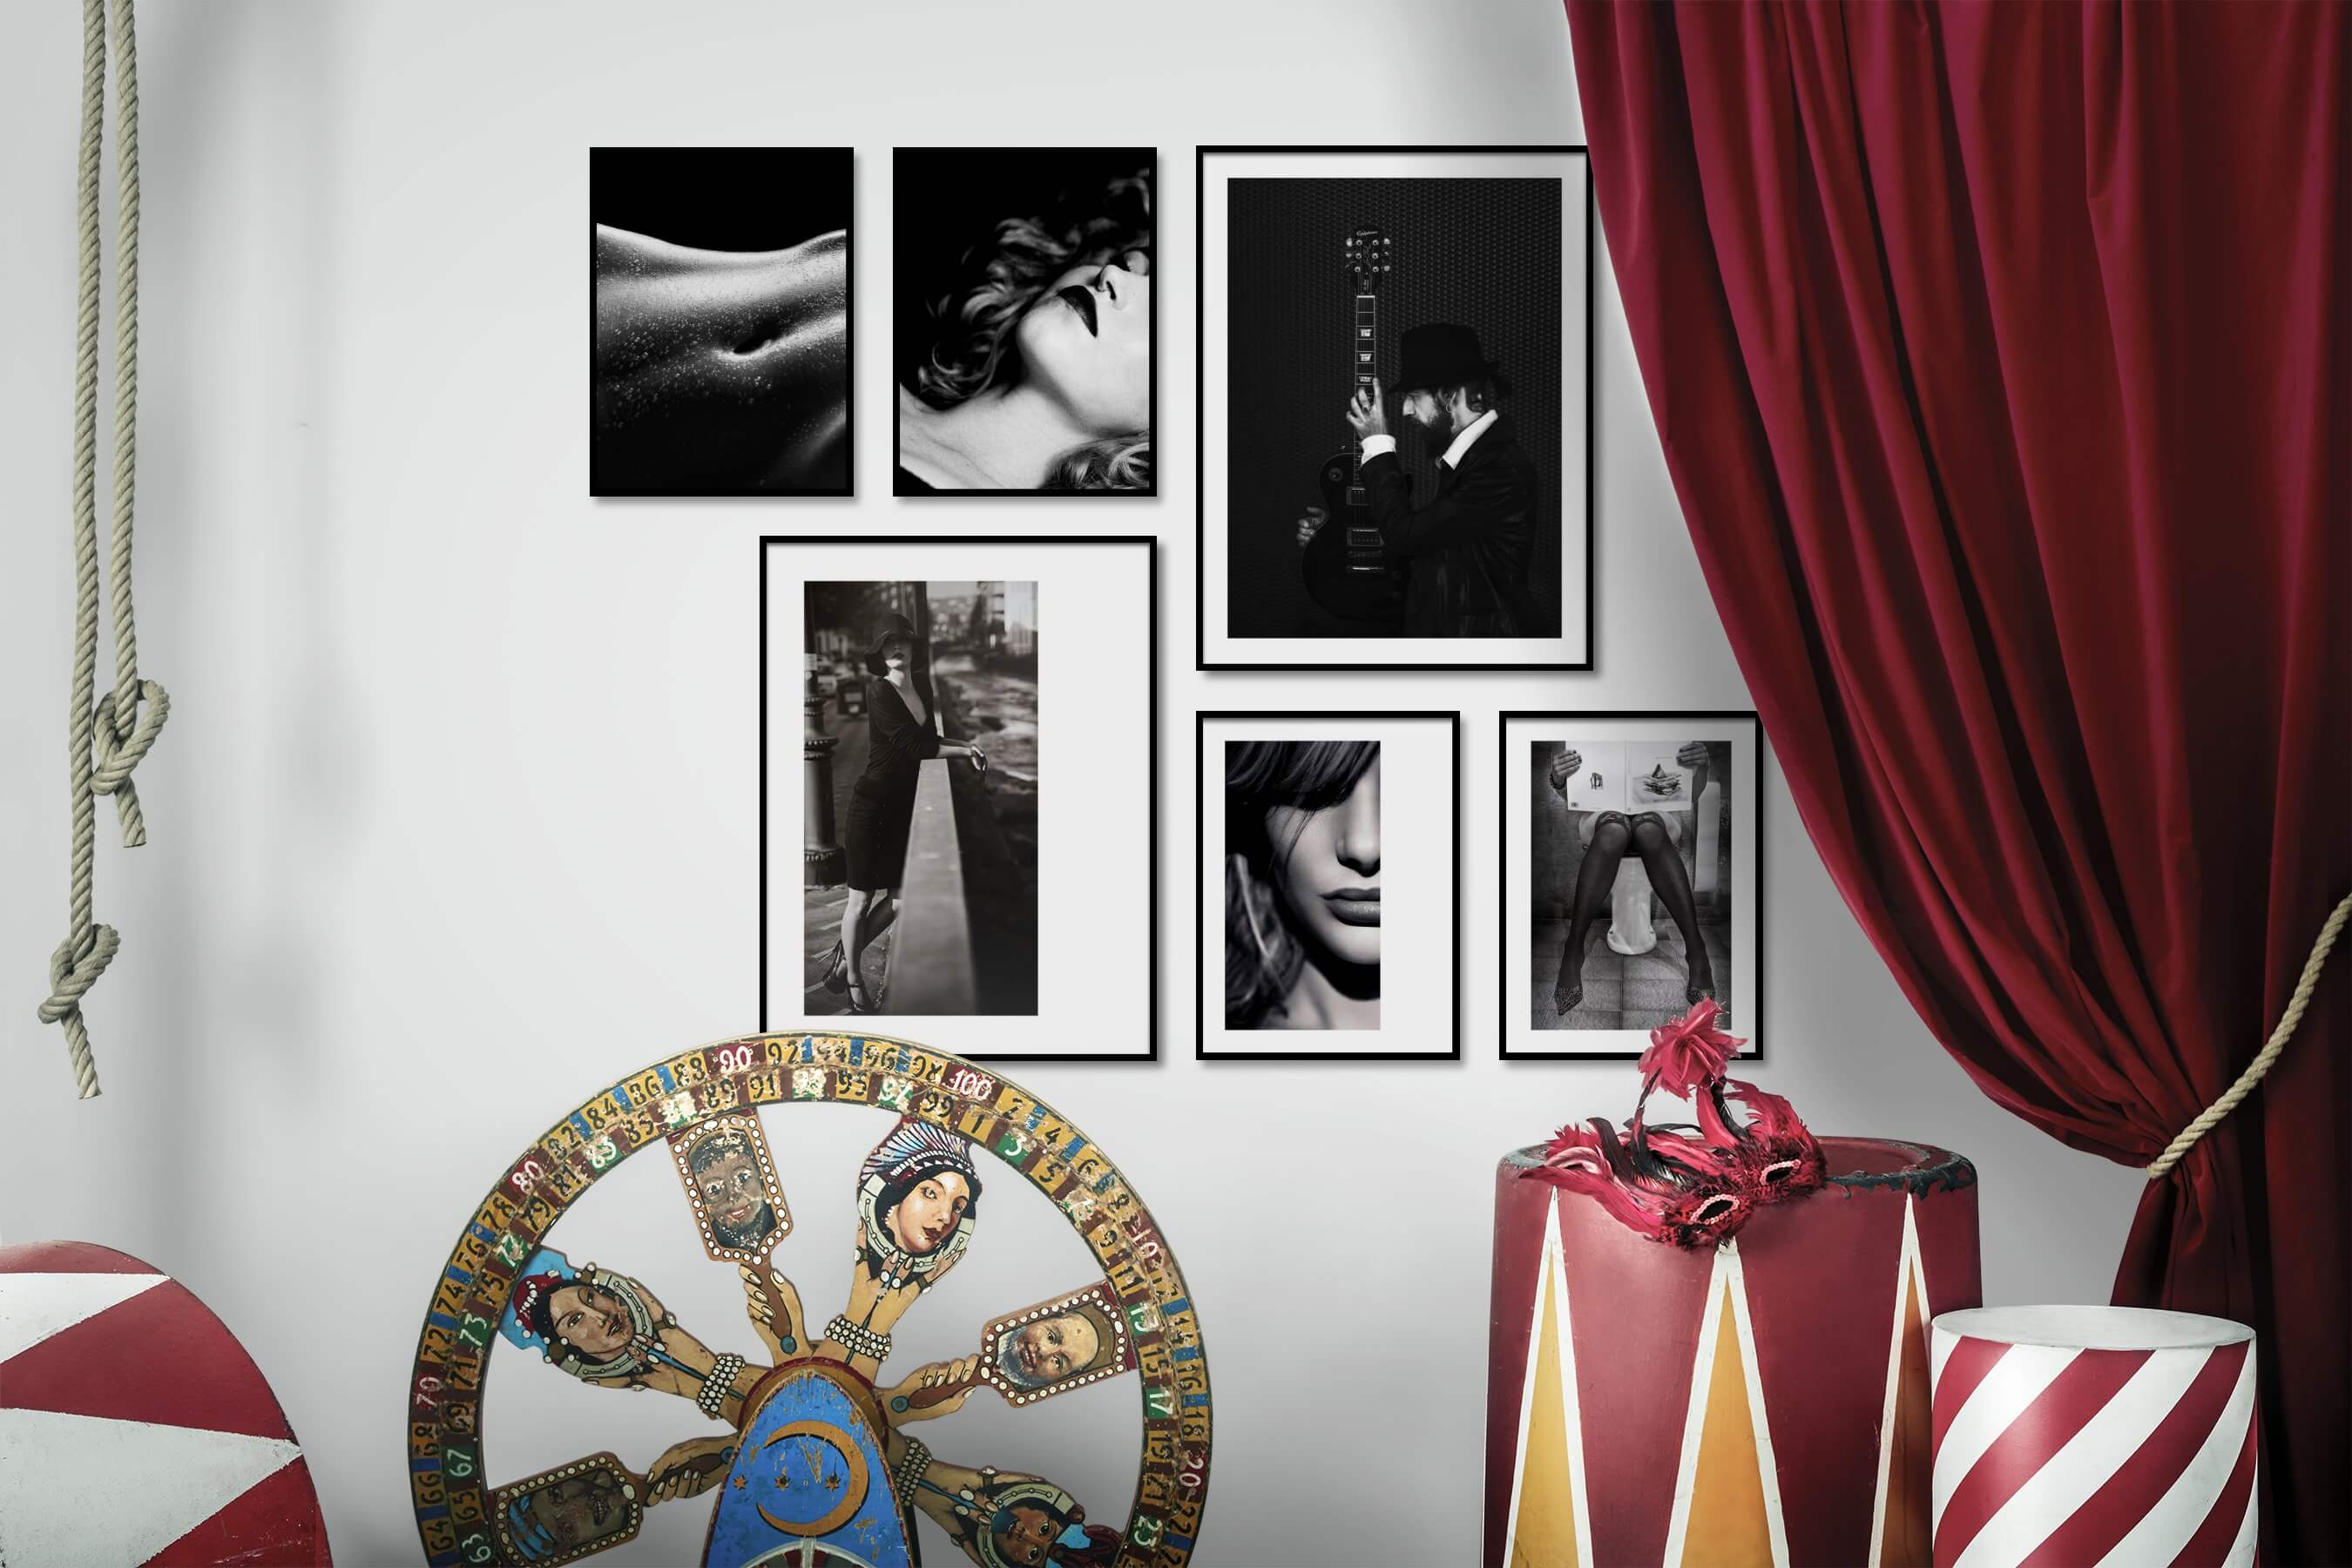 Gallery wall idea with six framed pictures arranged on a wall depicting Fashion & Beauty, Black & White, Dark Tones, City Life, Vintage, and For the Moderate